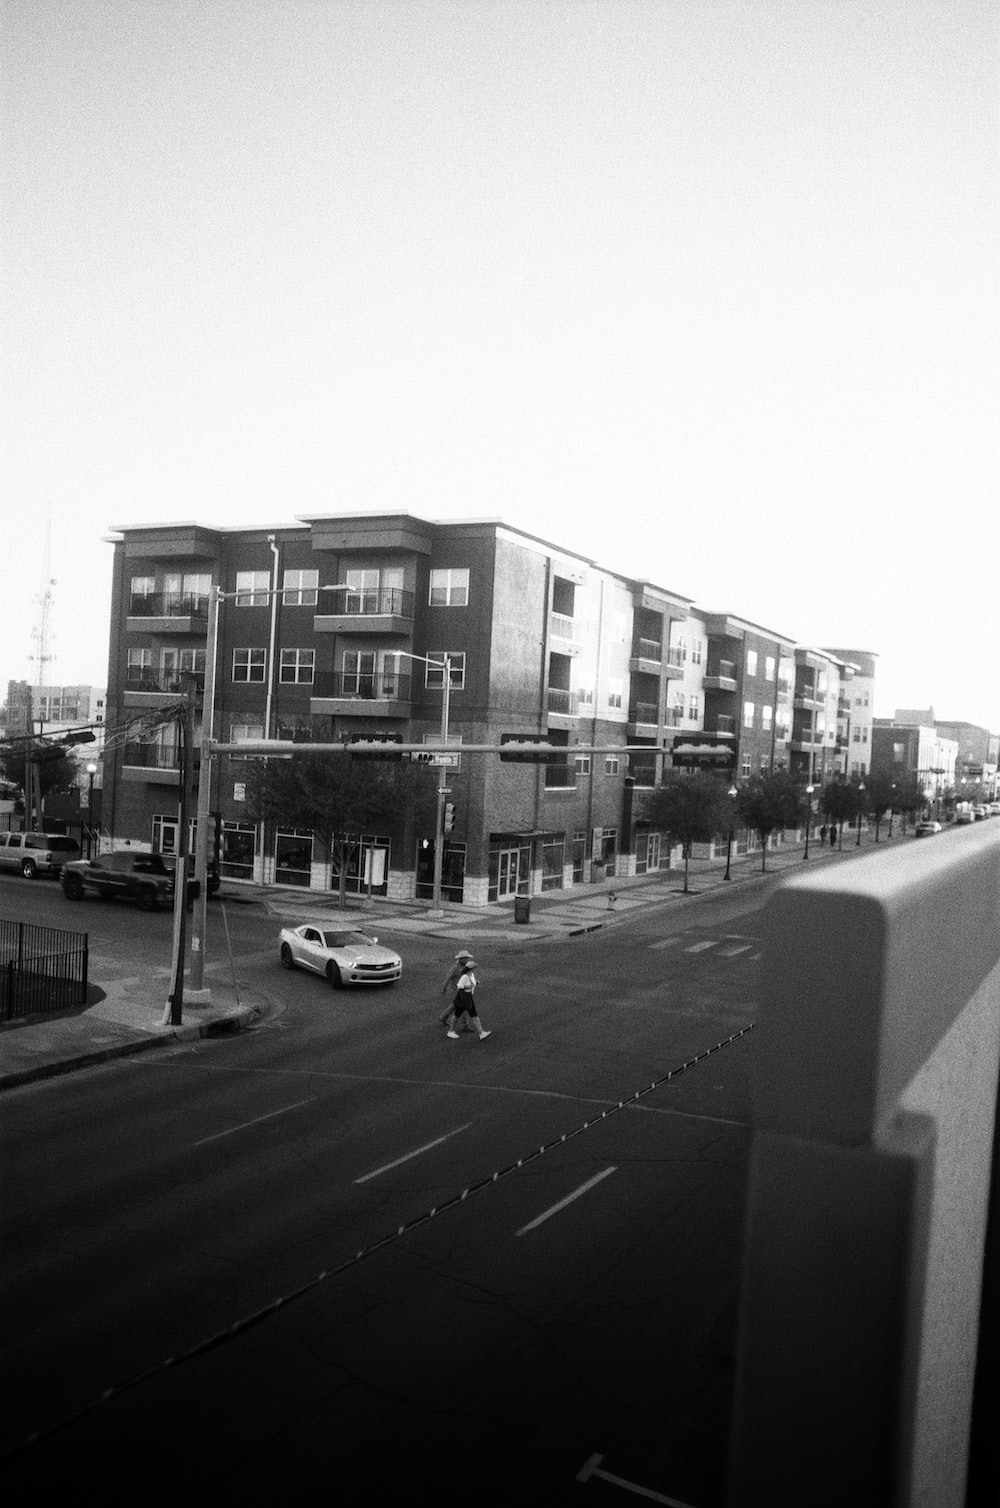 grayscale photo of cars on road near buildings